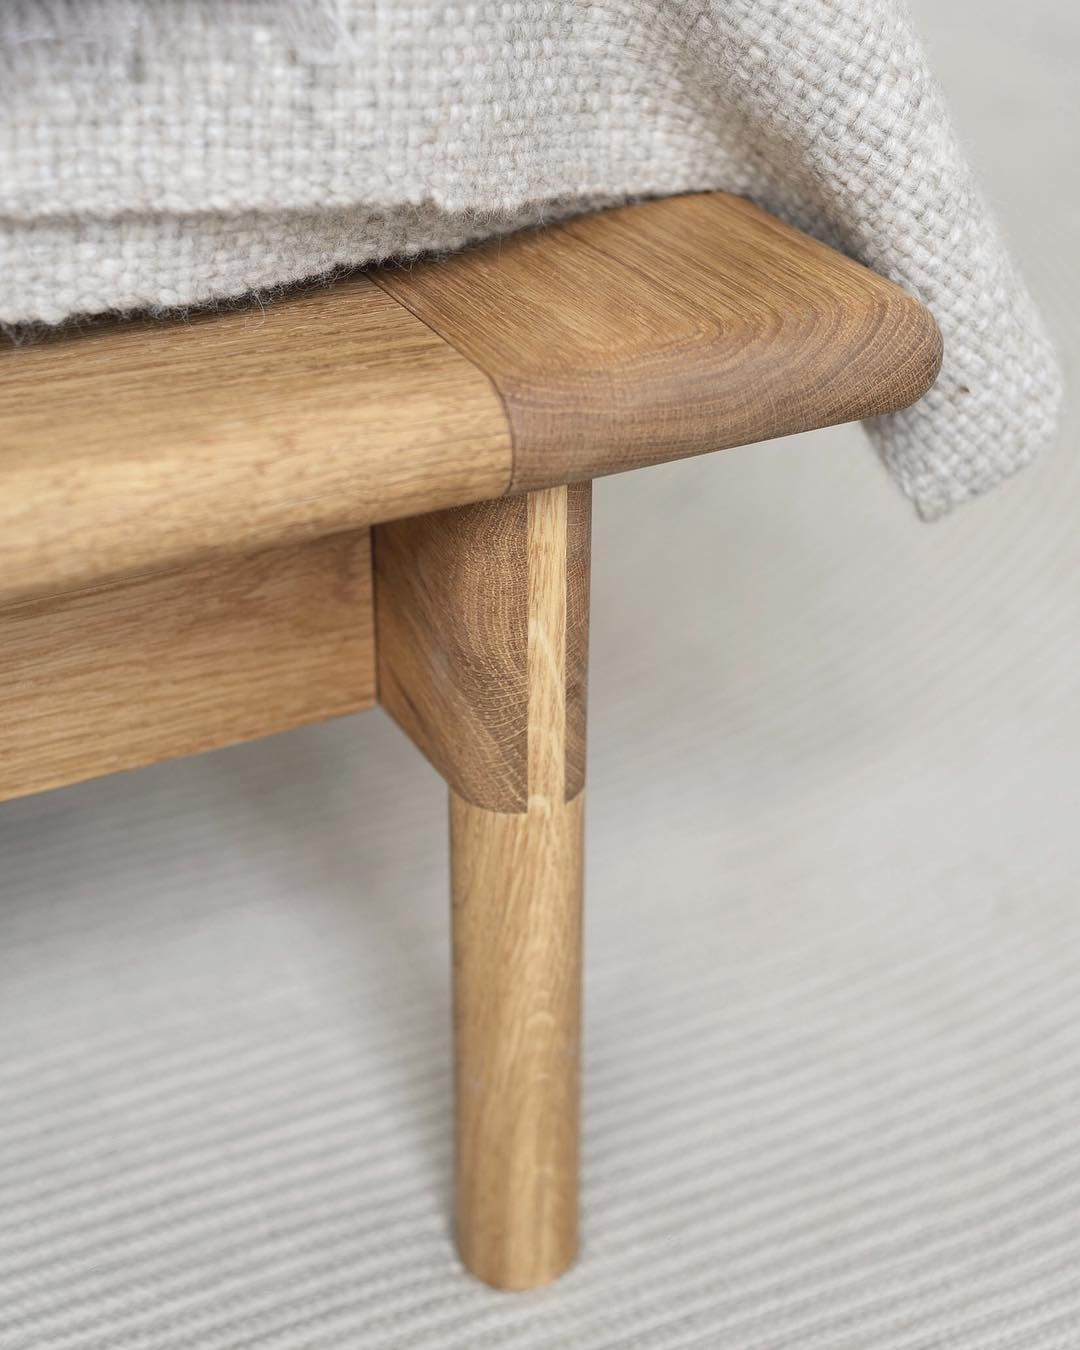 Mae Bed Detail Bridlejoint The Key Design Element For The